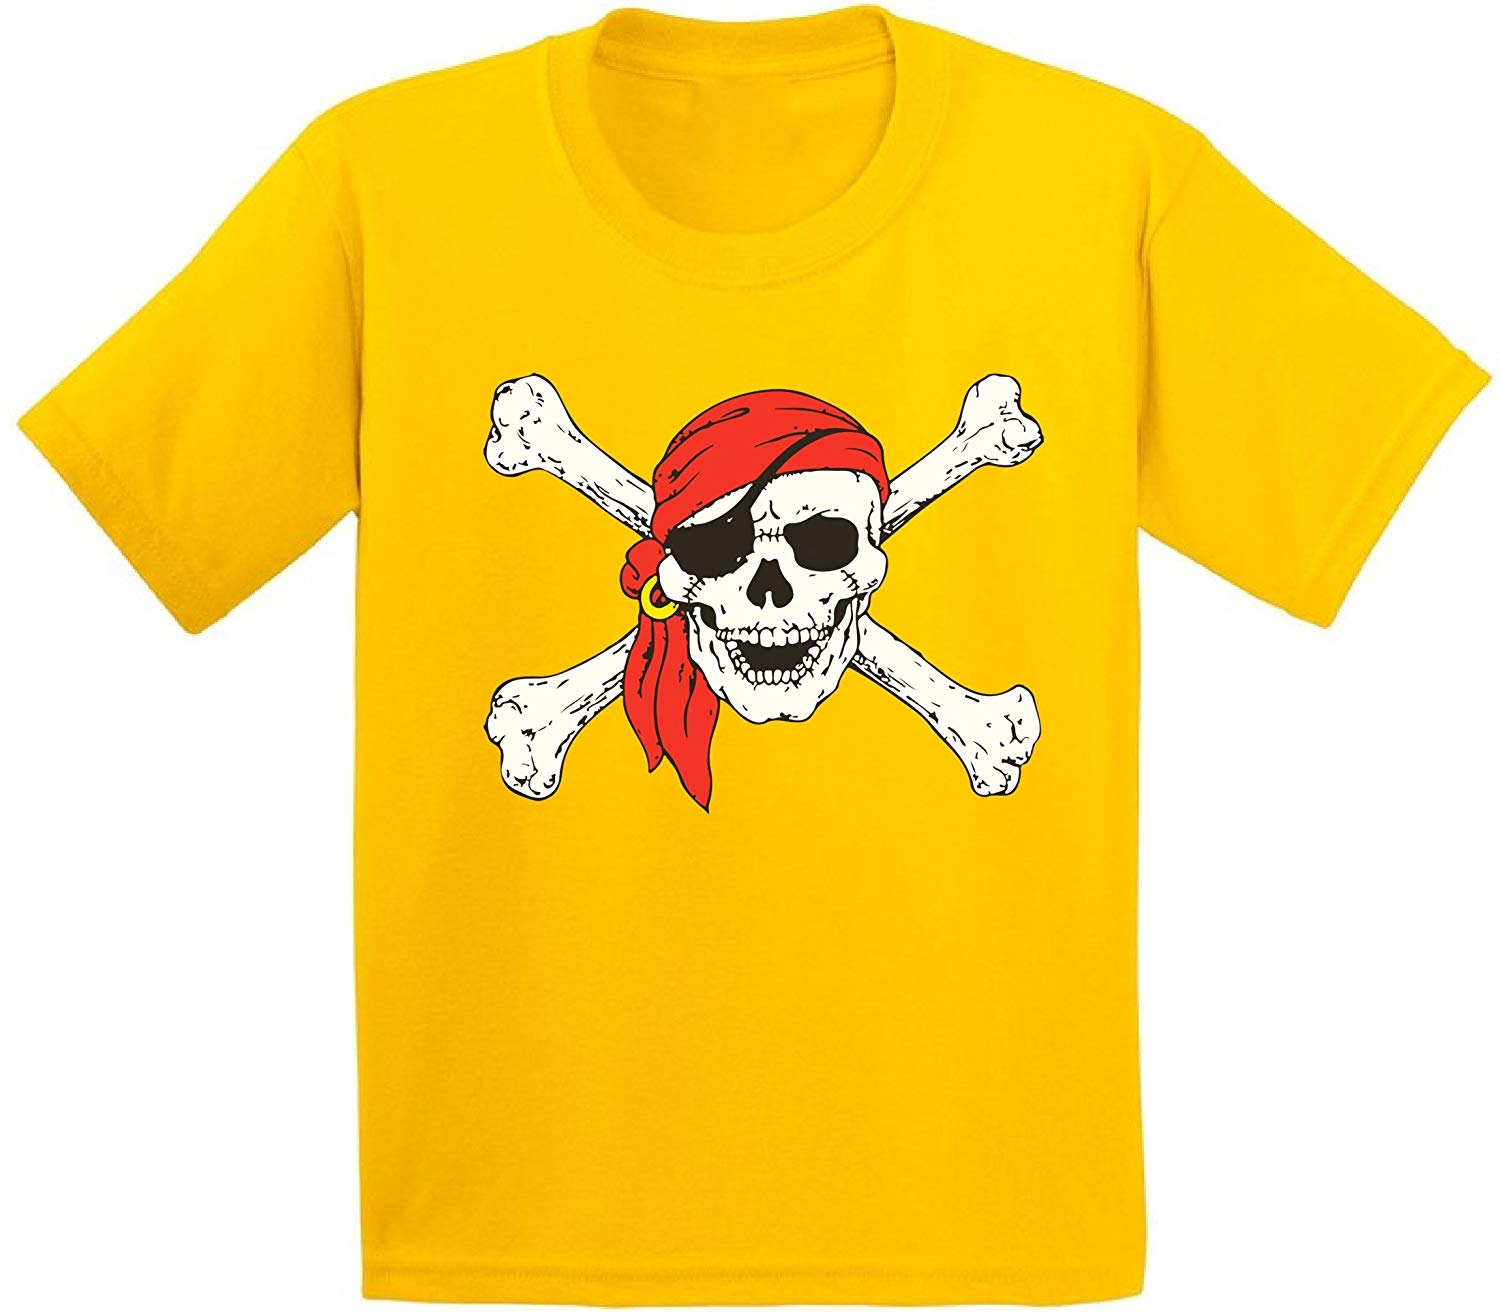 7880e126 Get Quotations · Awkward Styles Jolly Roger Skull & Crossbones Youth T  shirts Kids Tees Pirate Flag Youth T